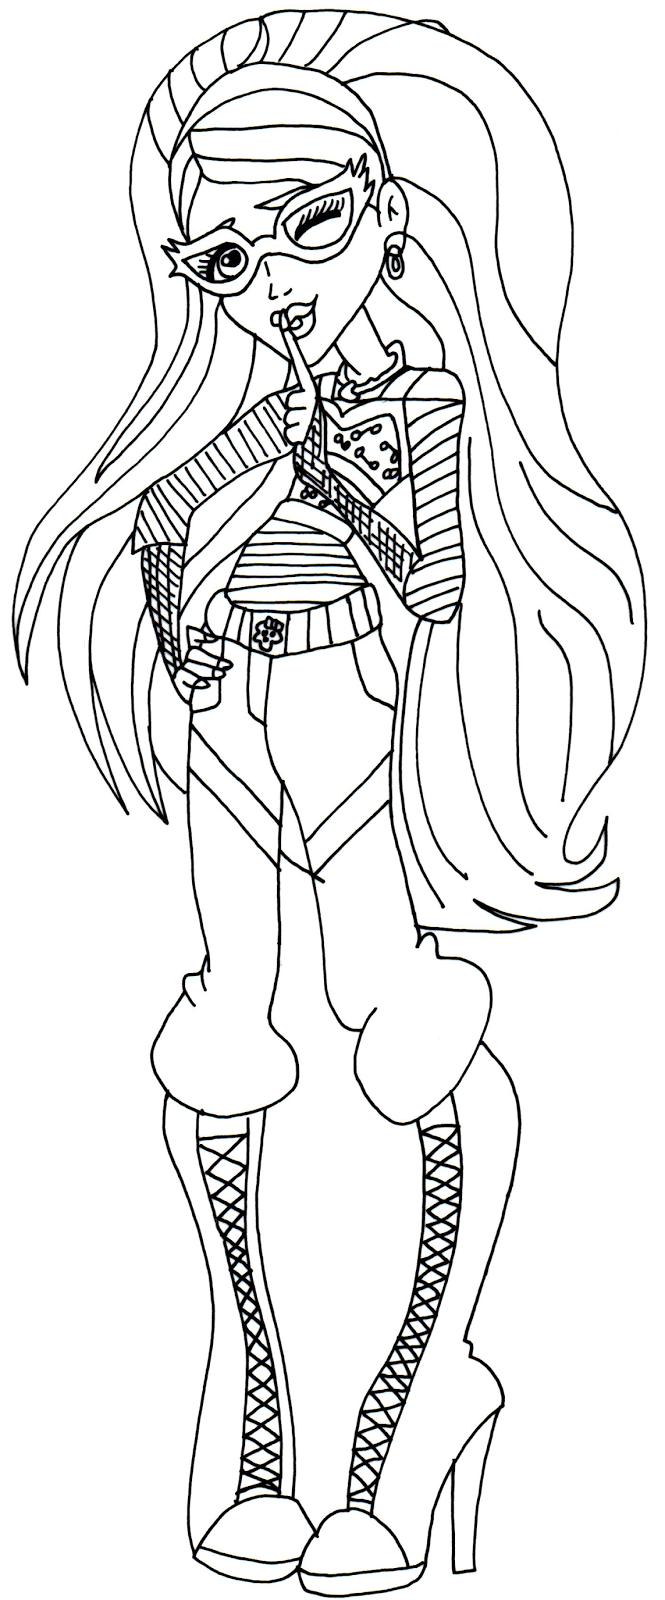 Free Printable Monster High Coloring Pages: Ghoulia Yelps